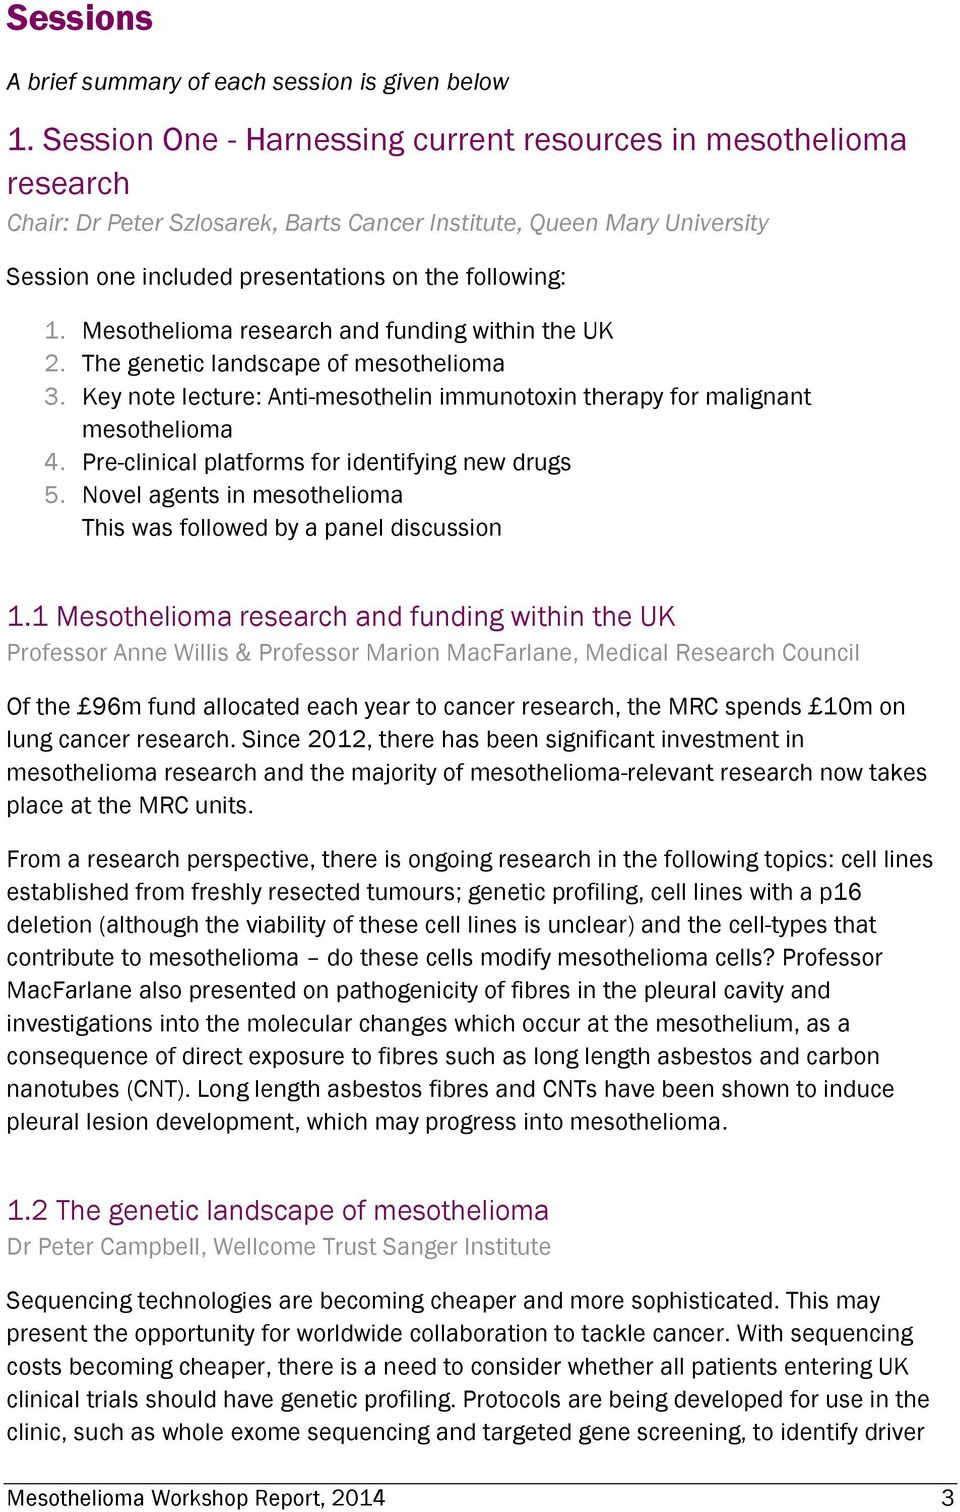 Mesothelioma research and funding within the UK 2. The genetic landscape of mesothelioma 3. Key note lecture: Anti-mesothelin immunotoxin therapy for malignant mesothelioma 4.